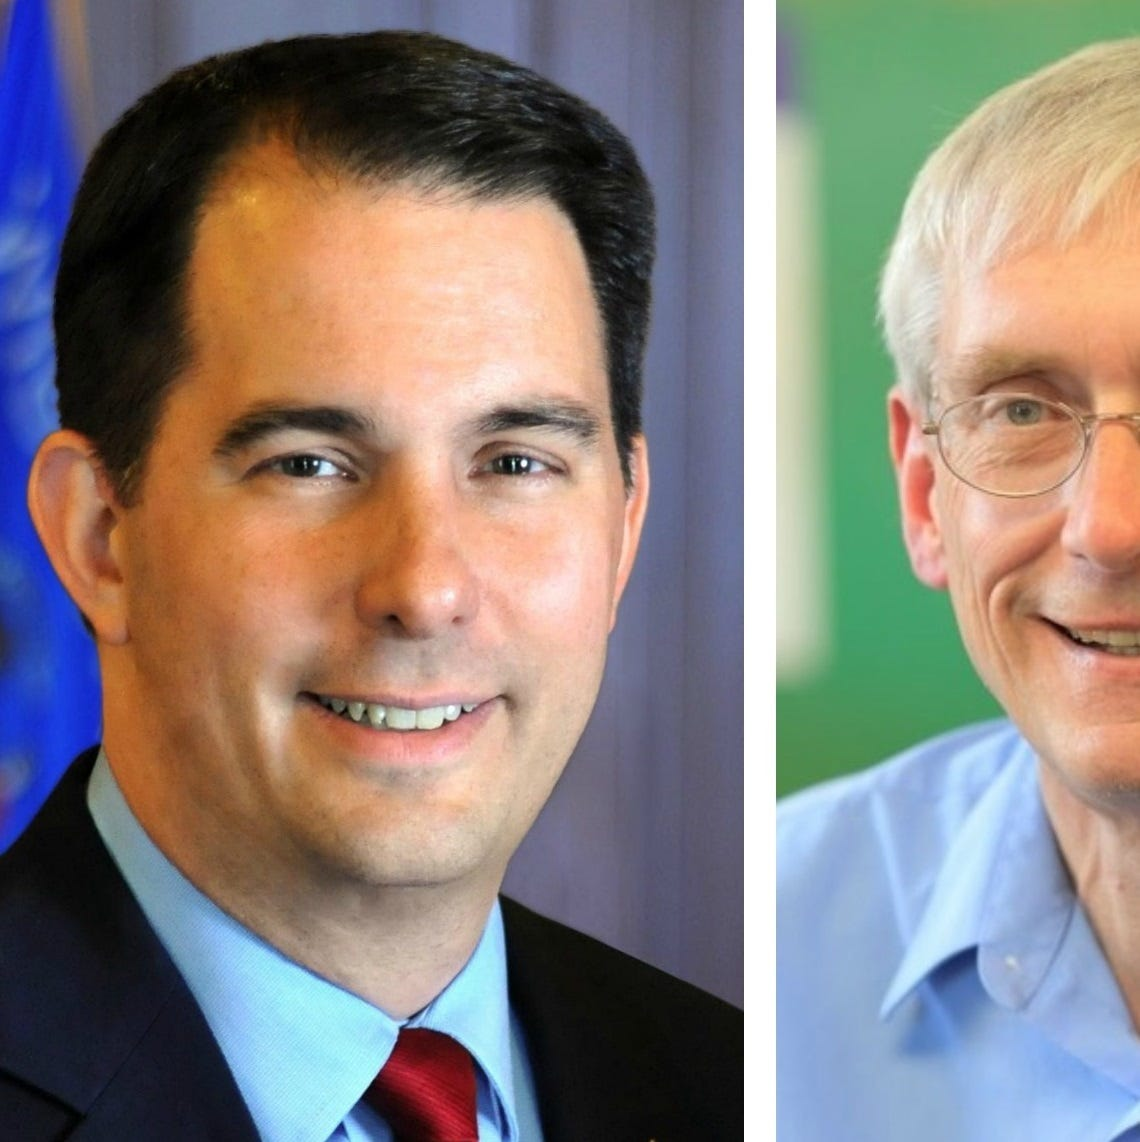 Second former Scott Walker aide criticizes governor on public records, makes ad for opponent Tony Evers